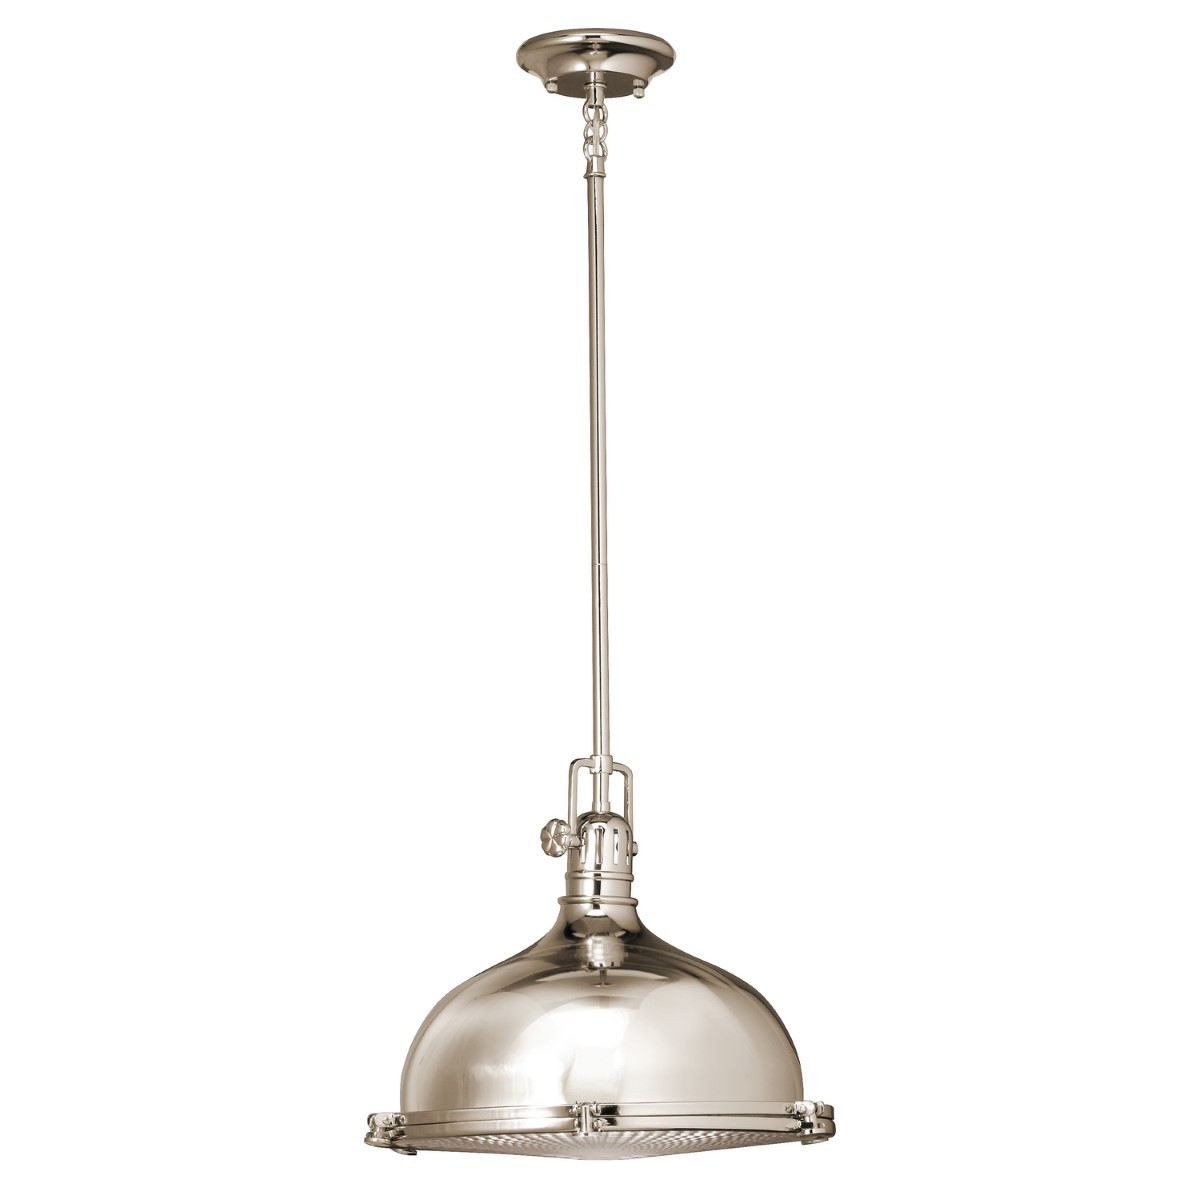 Kichler Hatteras Bay Hatteras Bay Pendant Light with Fresnel Lens Fresnel Lens Steel Shade - Polished Nickel (2666PN)